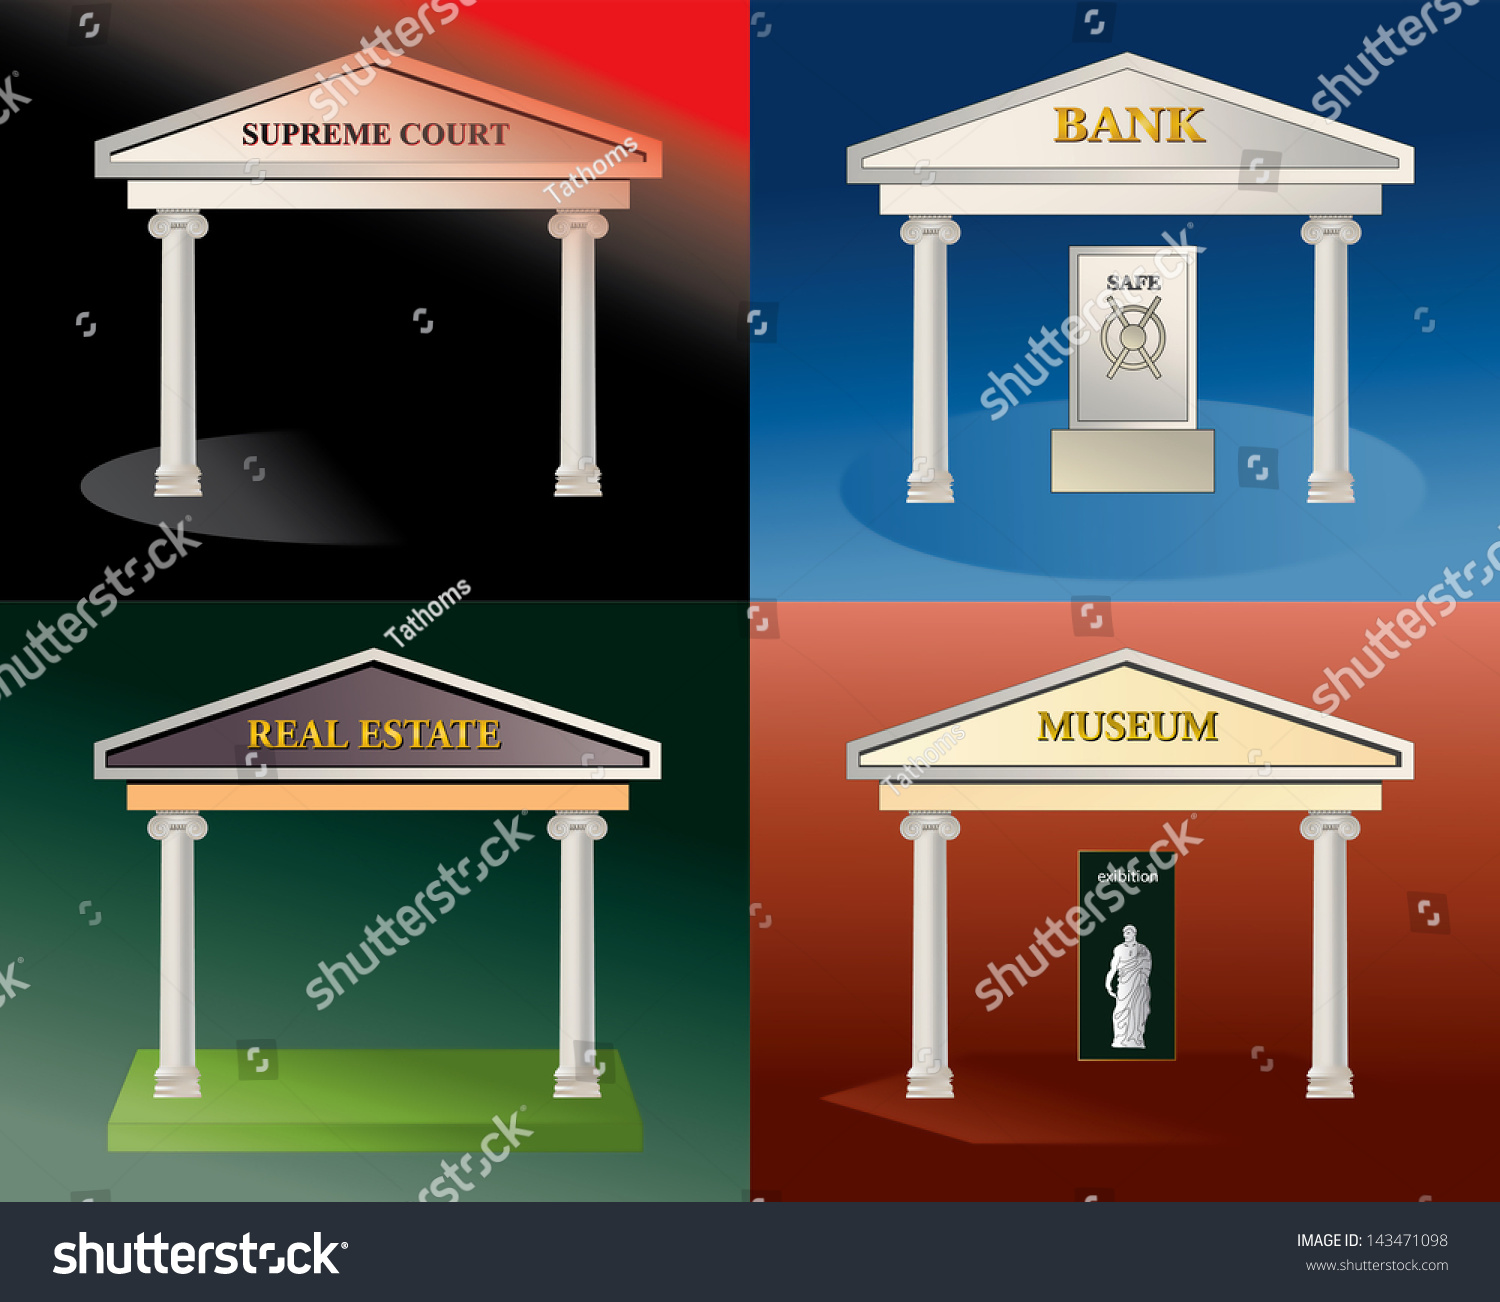 stock-photo-four-icons-illustration-bank